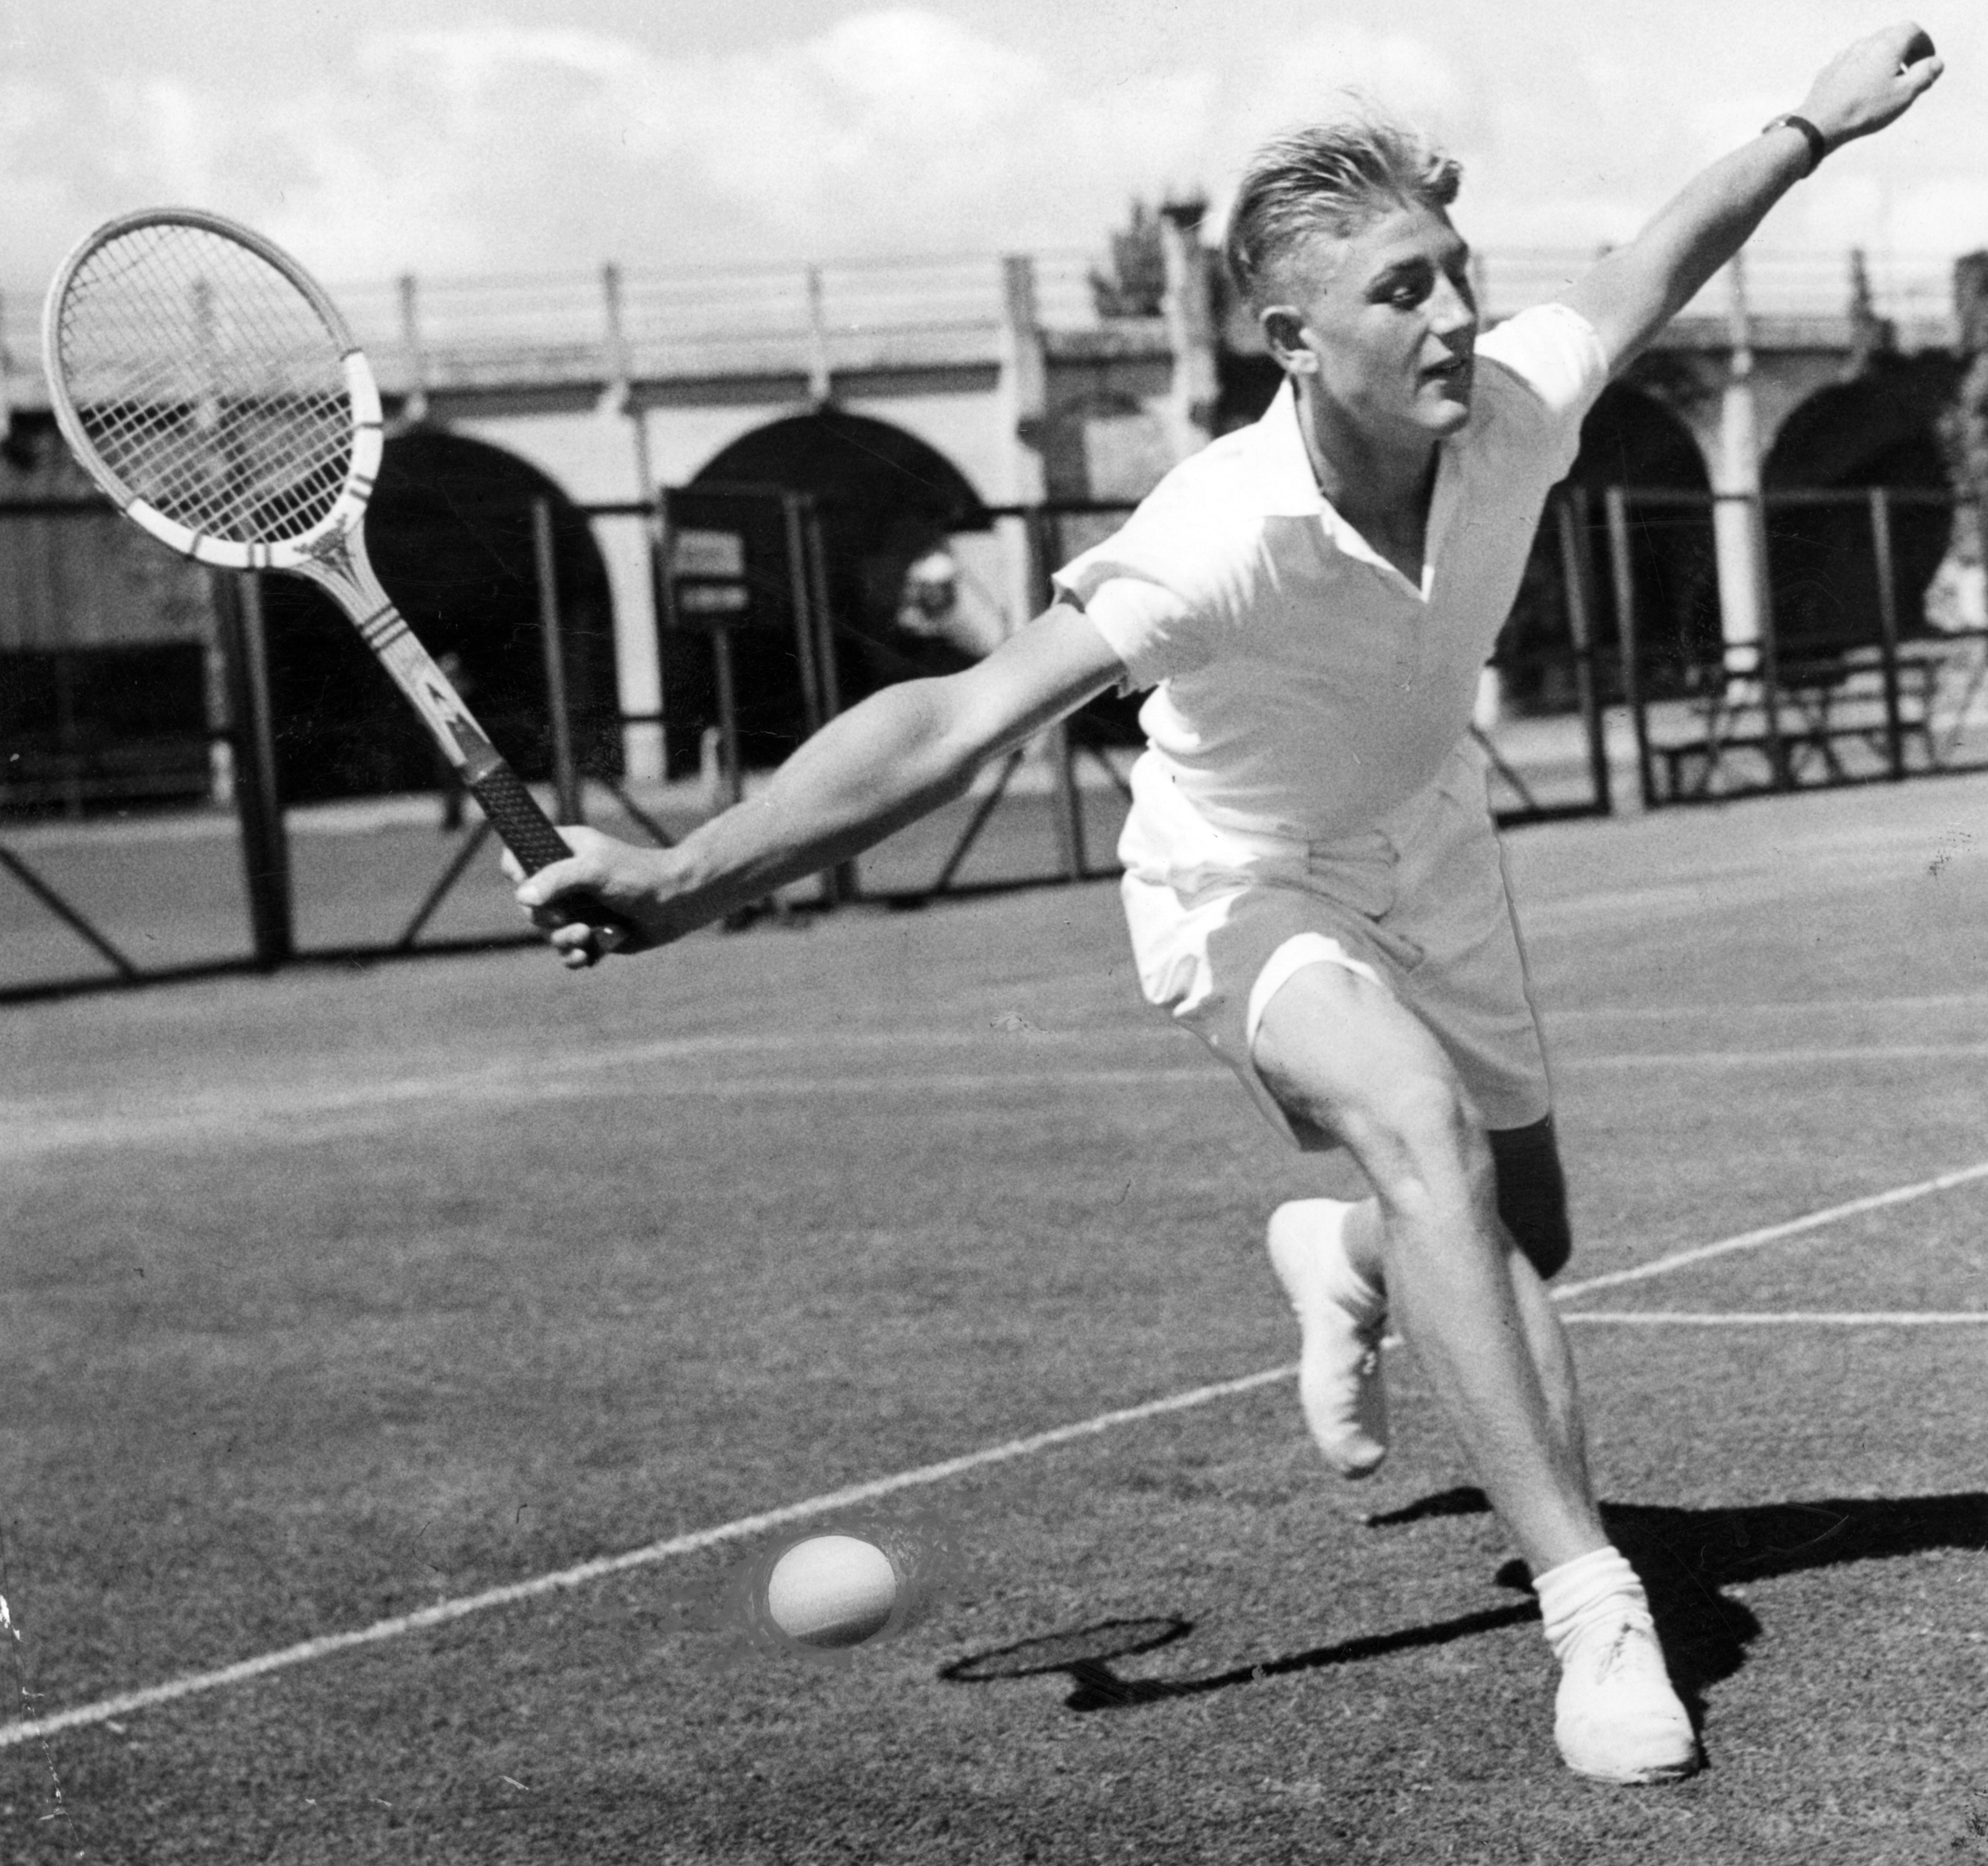 Australian tennis player Lewis Hoad